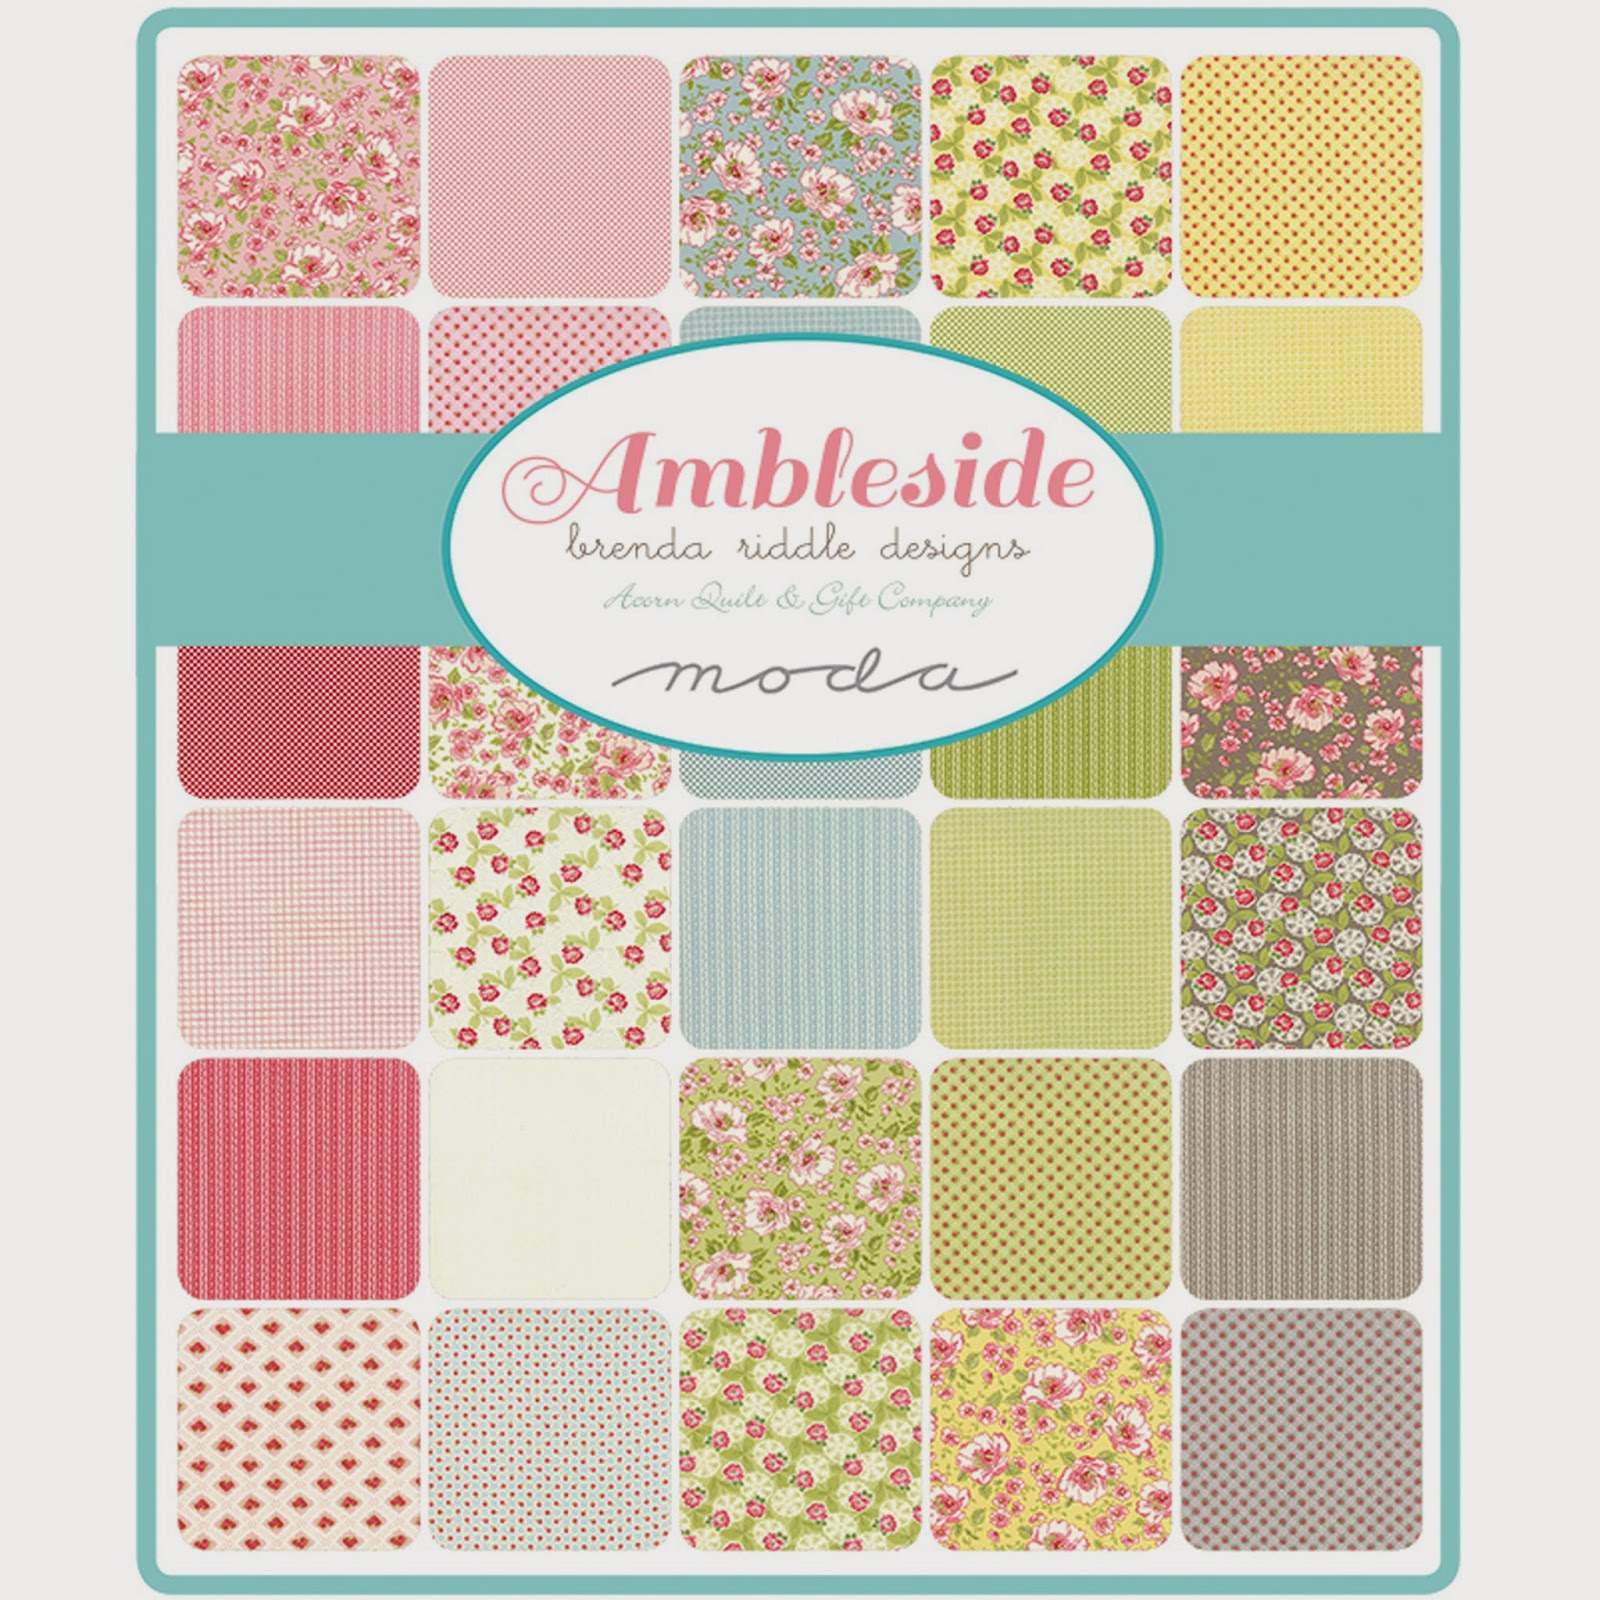 Moda AMBLESIDE Fabric by Brenda Riddle Designs for Moda Fabrics